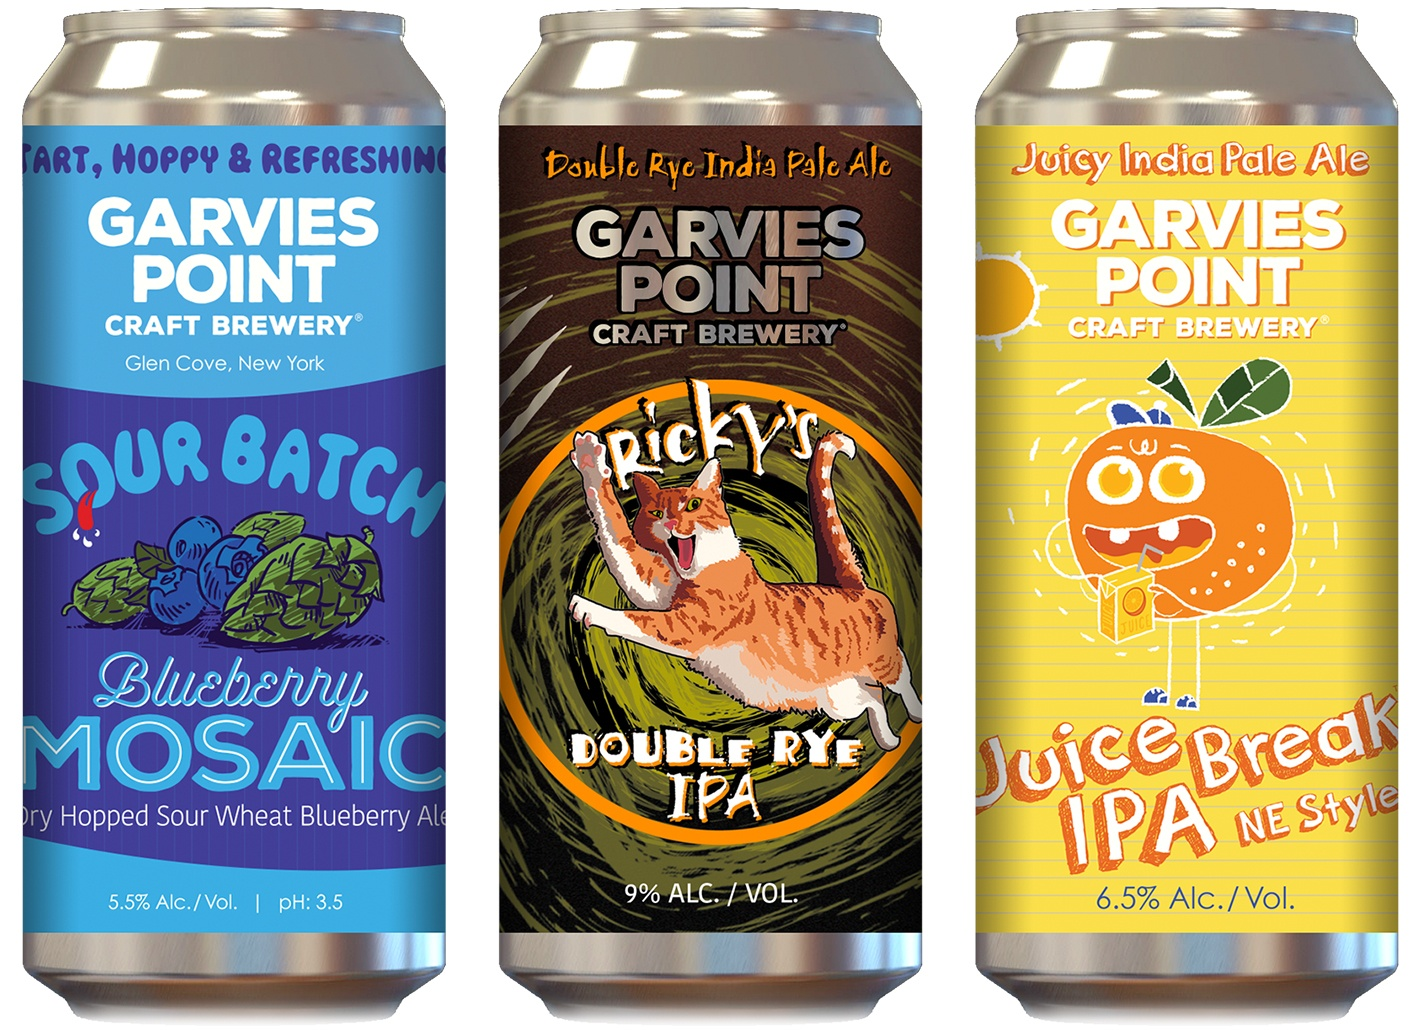 EGC designed Garvies Point's steadily-growing line of hyper-fresh canned beers with fun, unique-looking packaging for a bold shelf presence.